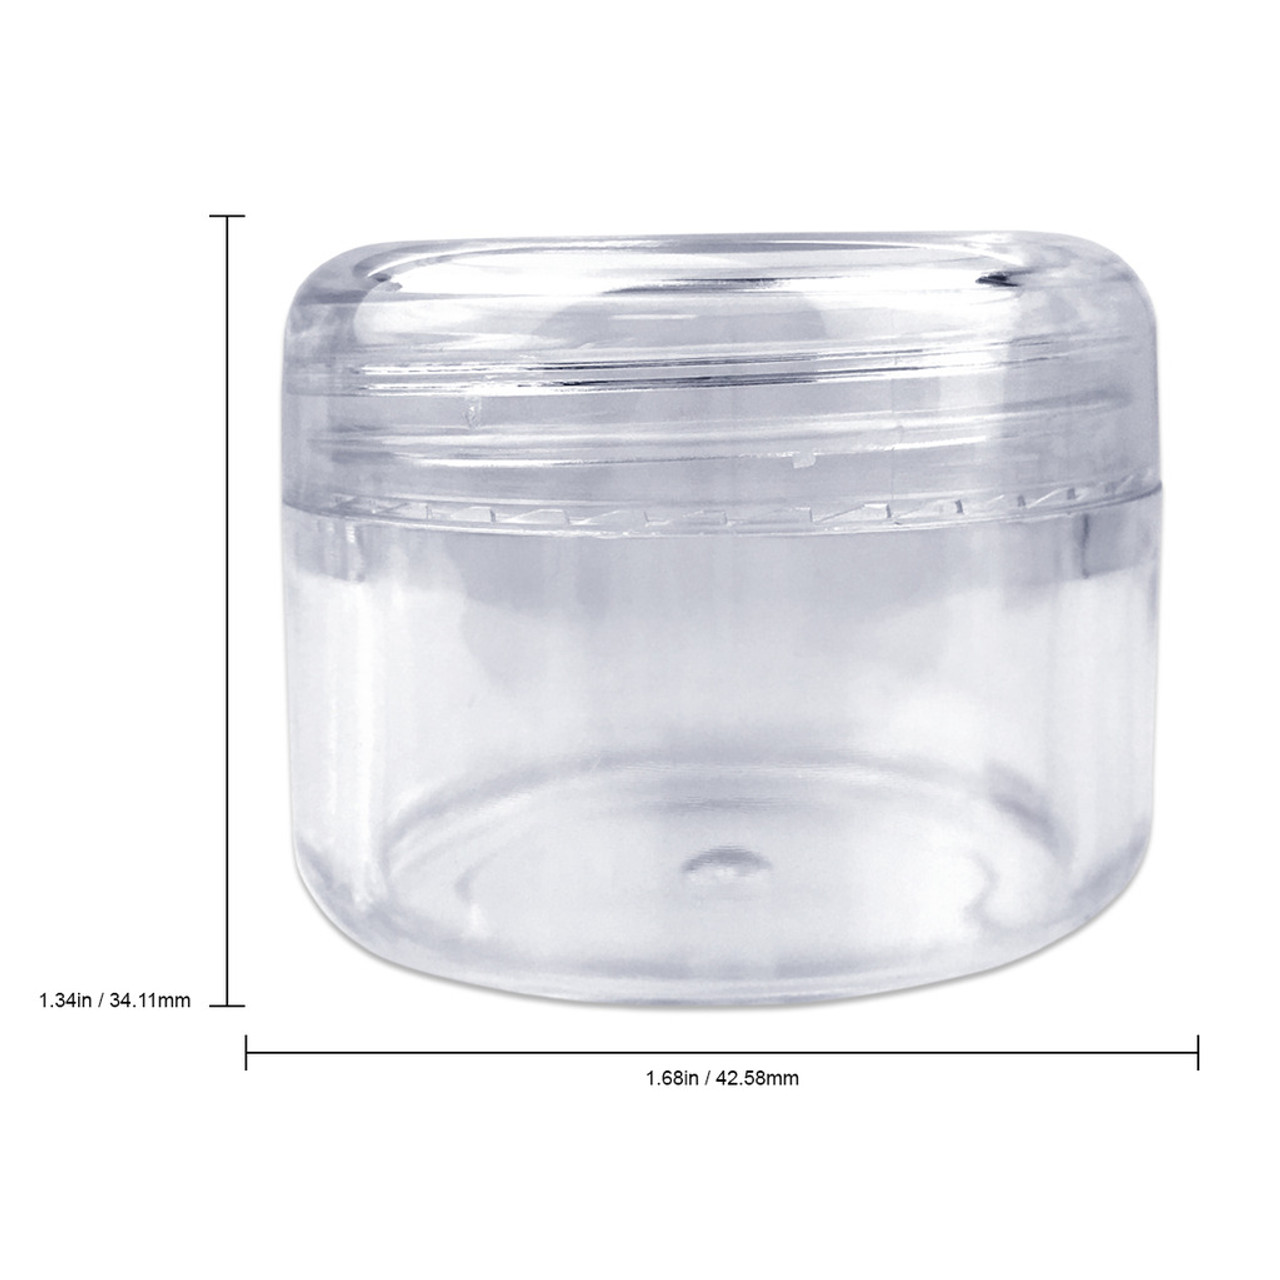 30g/30ml (1 oz) Plastic Clear Cosmetic Sample Jars (Round Top)